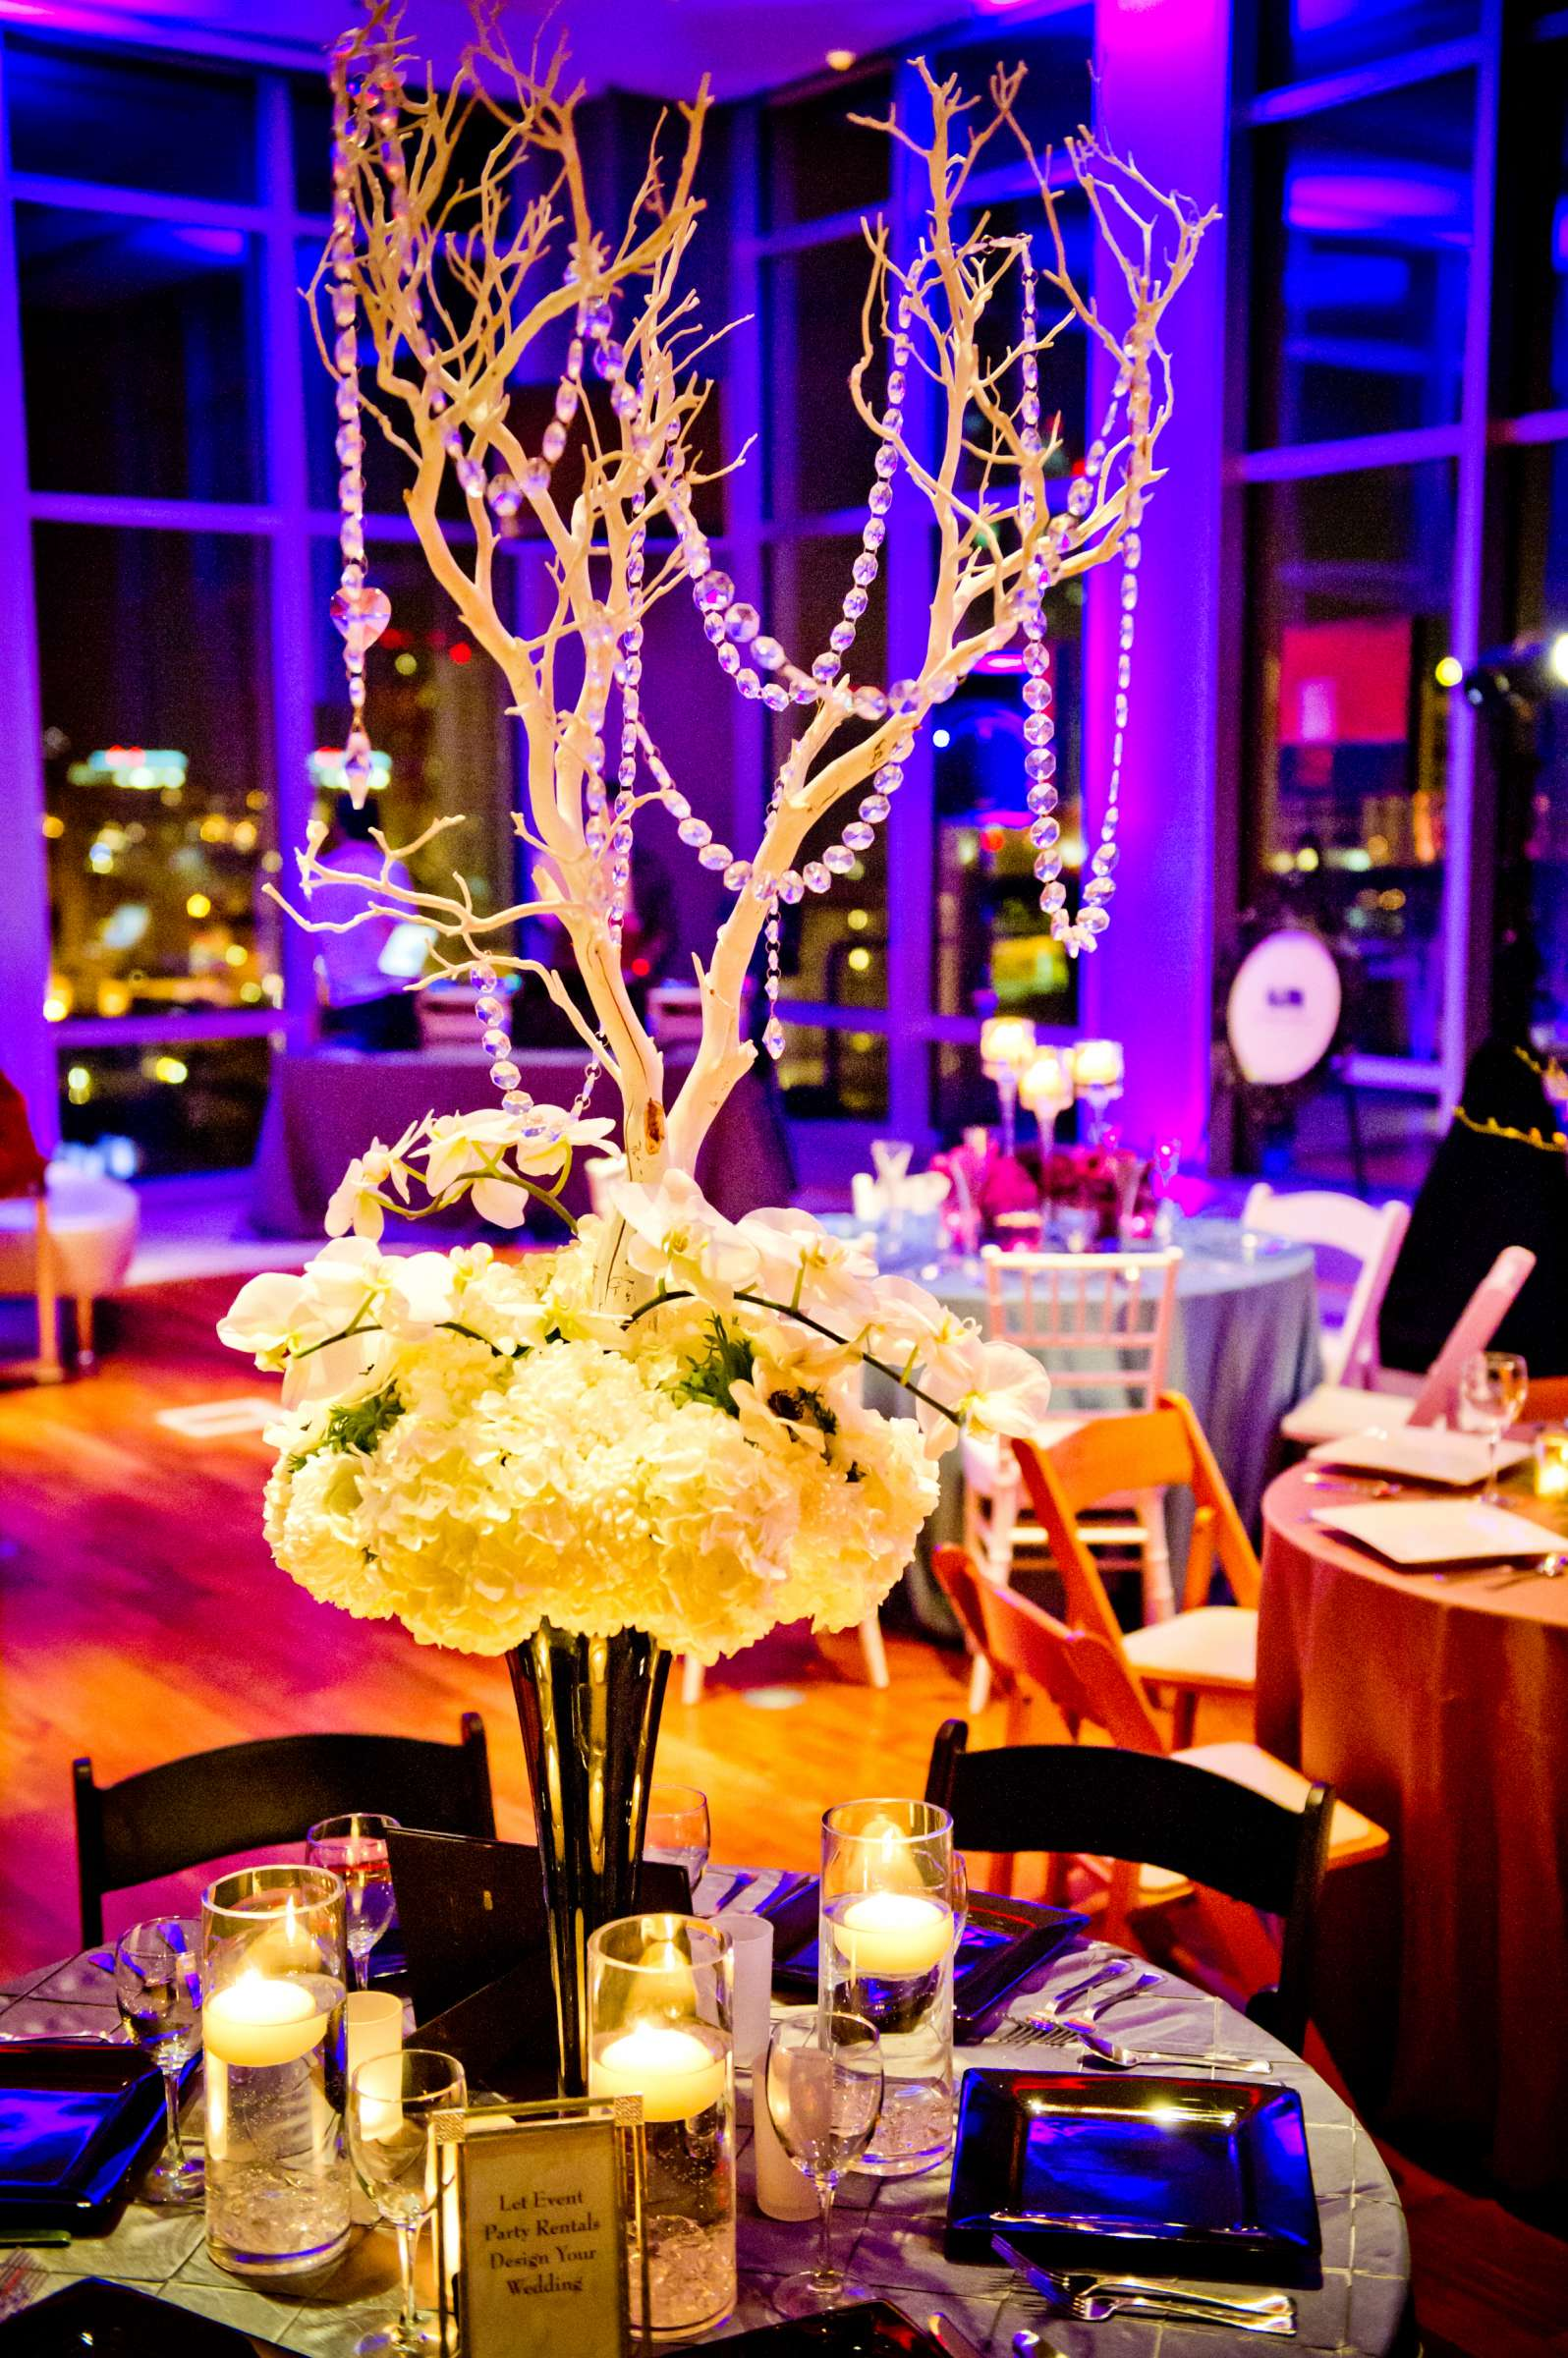 Ultimate Skybox Wedding coordinated by Creative Affairs Inc, Open House Wedding Photo #42 by True Photography